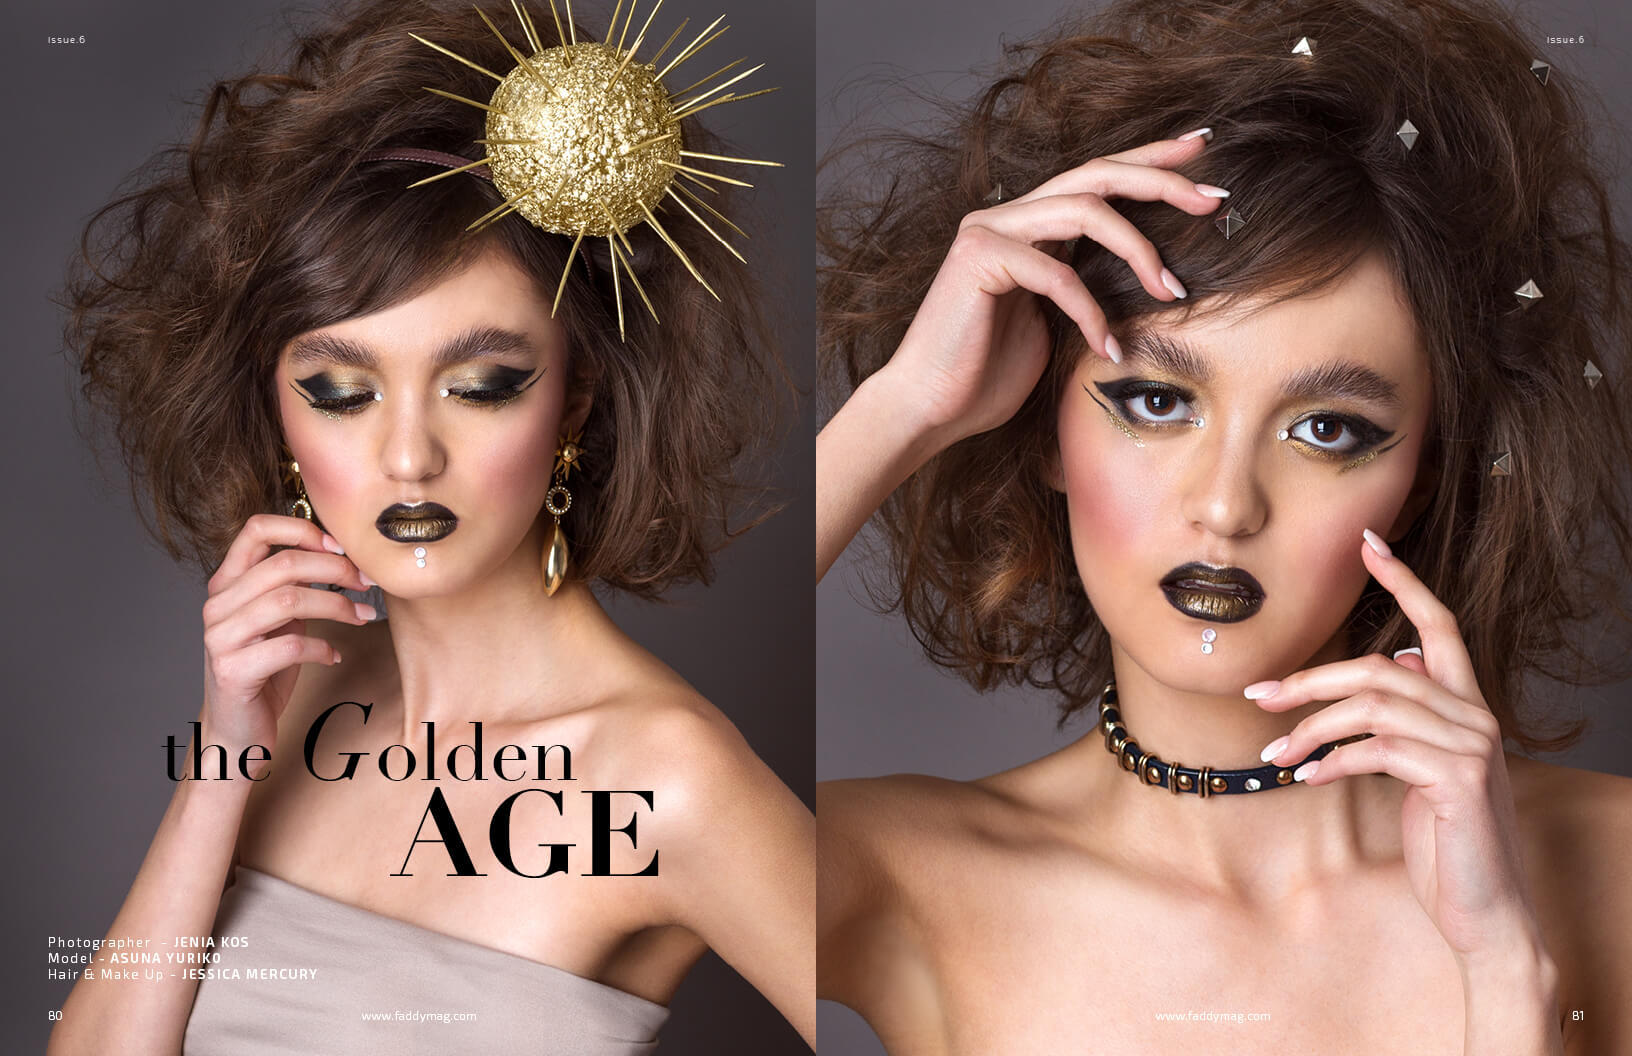 FADDY Editorial The Golden Age